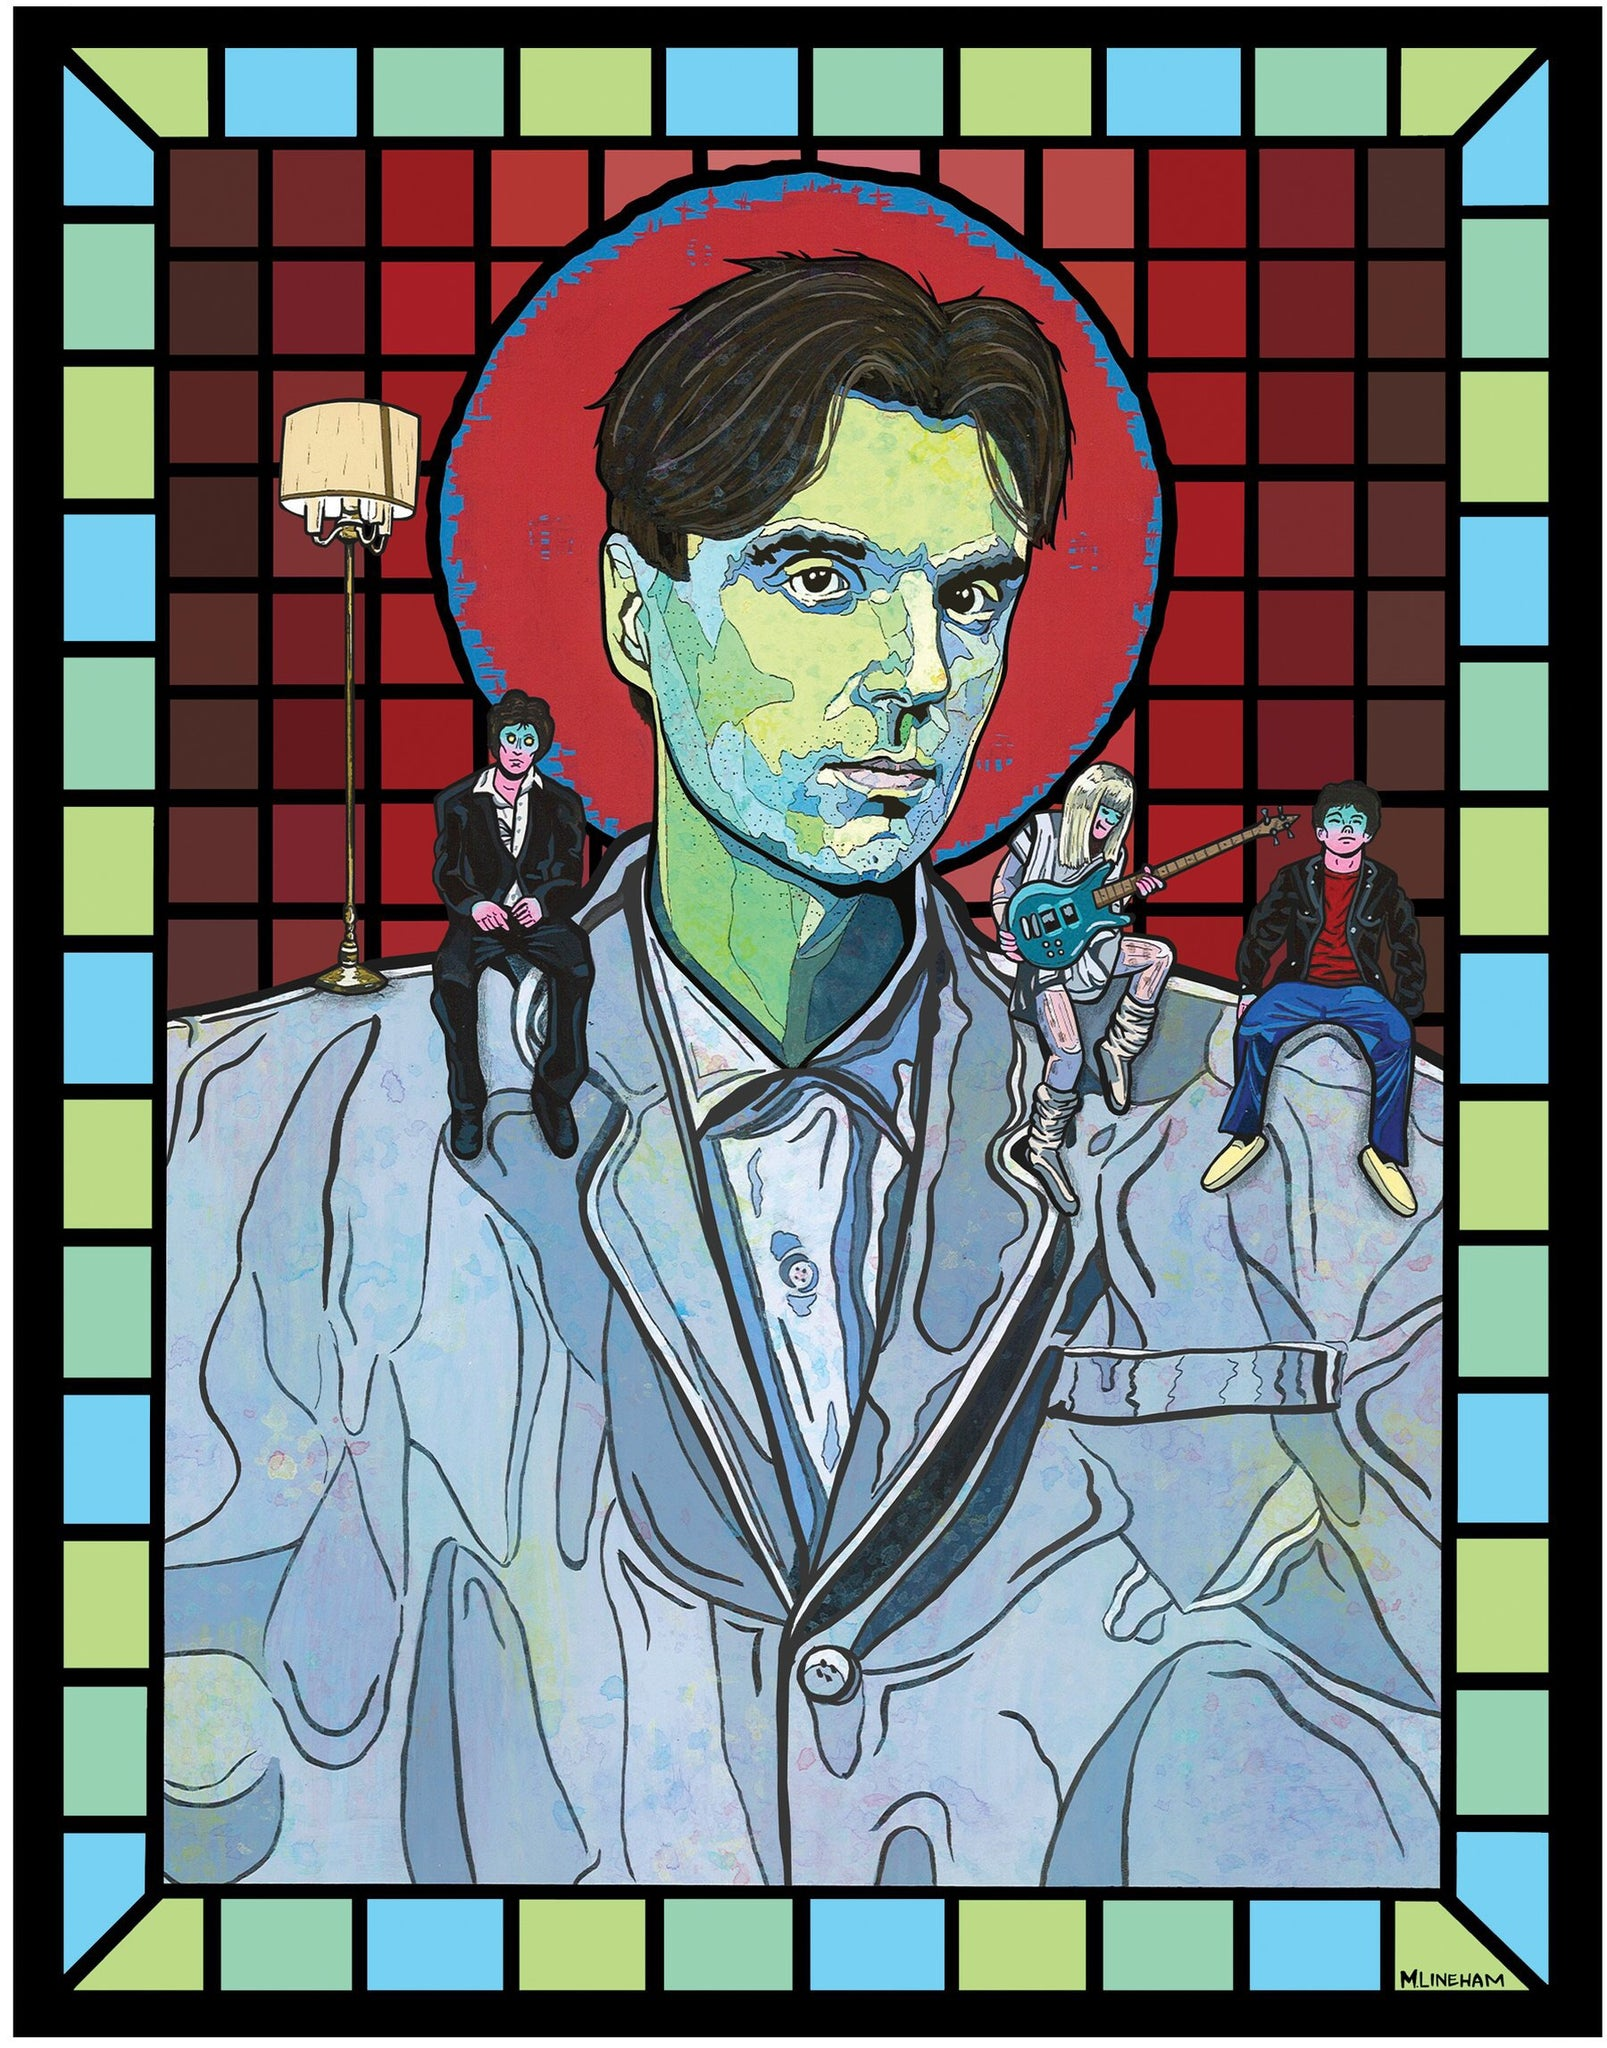 Saint David Byrne (Talking Heads)